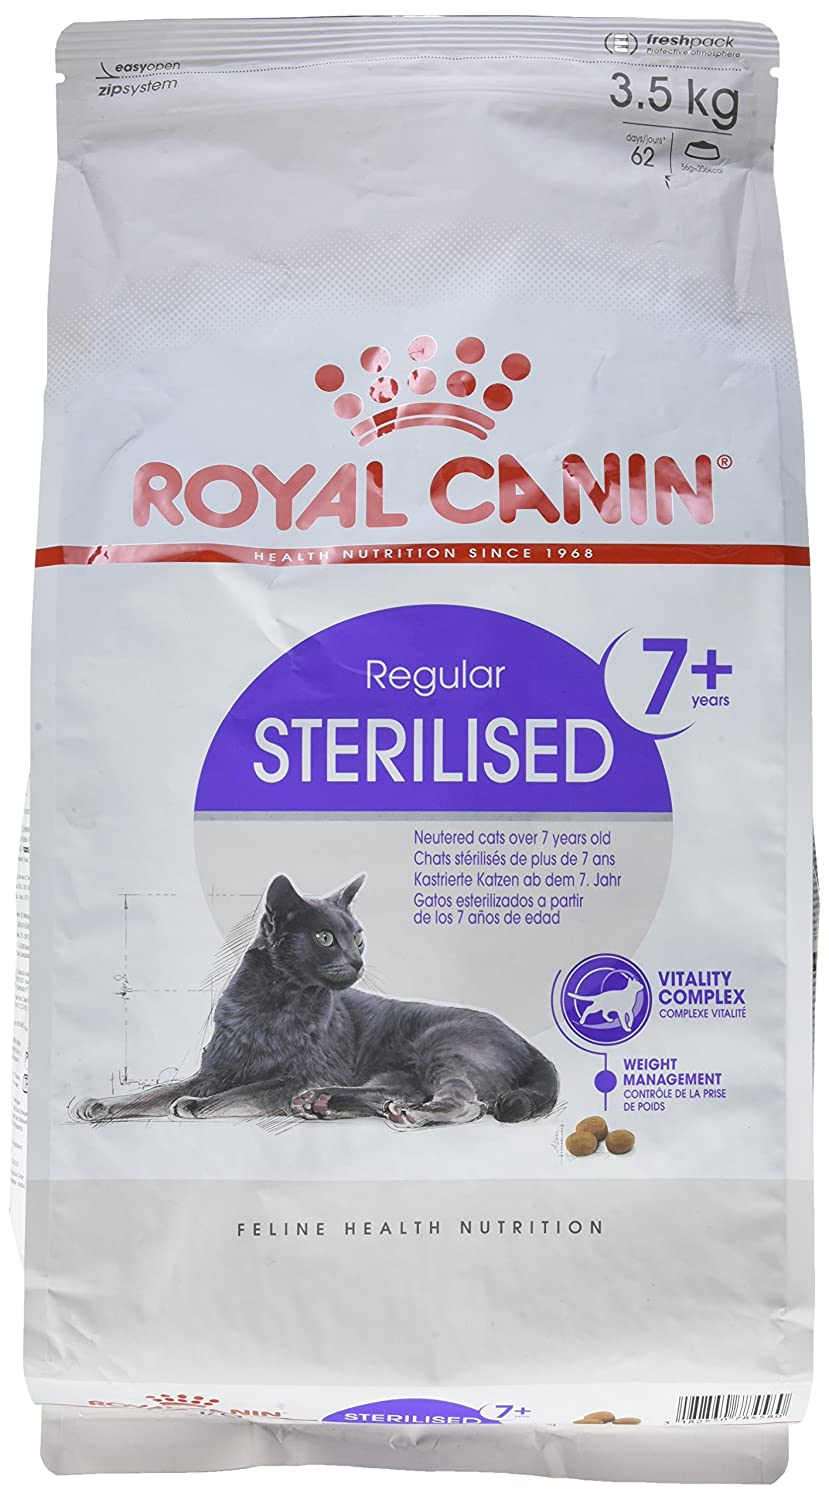 Royal Canin C-584637 Sterilised +7 - 3.5 Kg: Amazon.es: Productos para mascotas